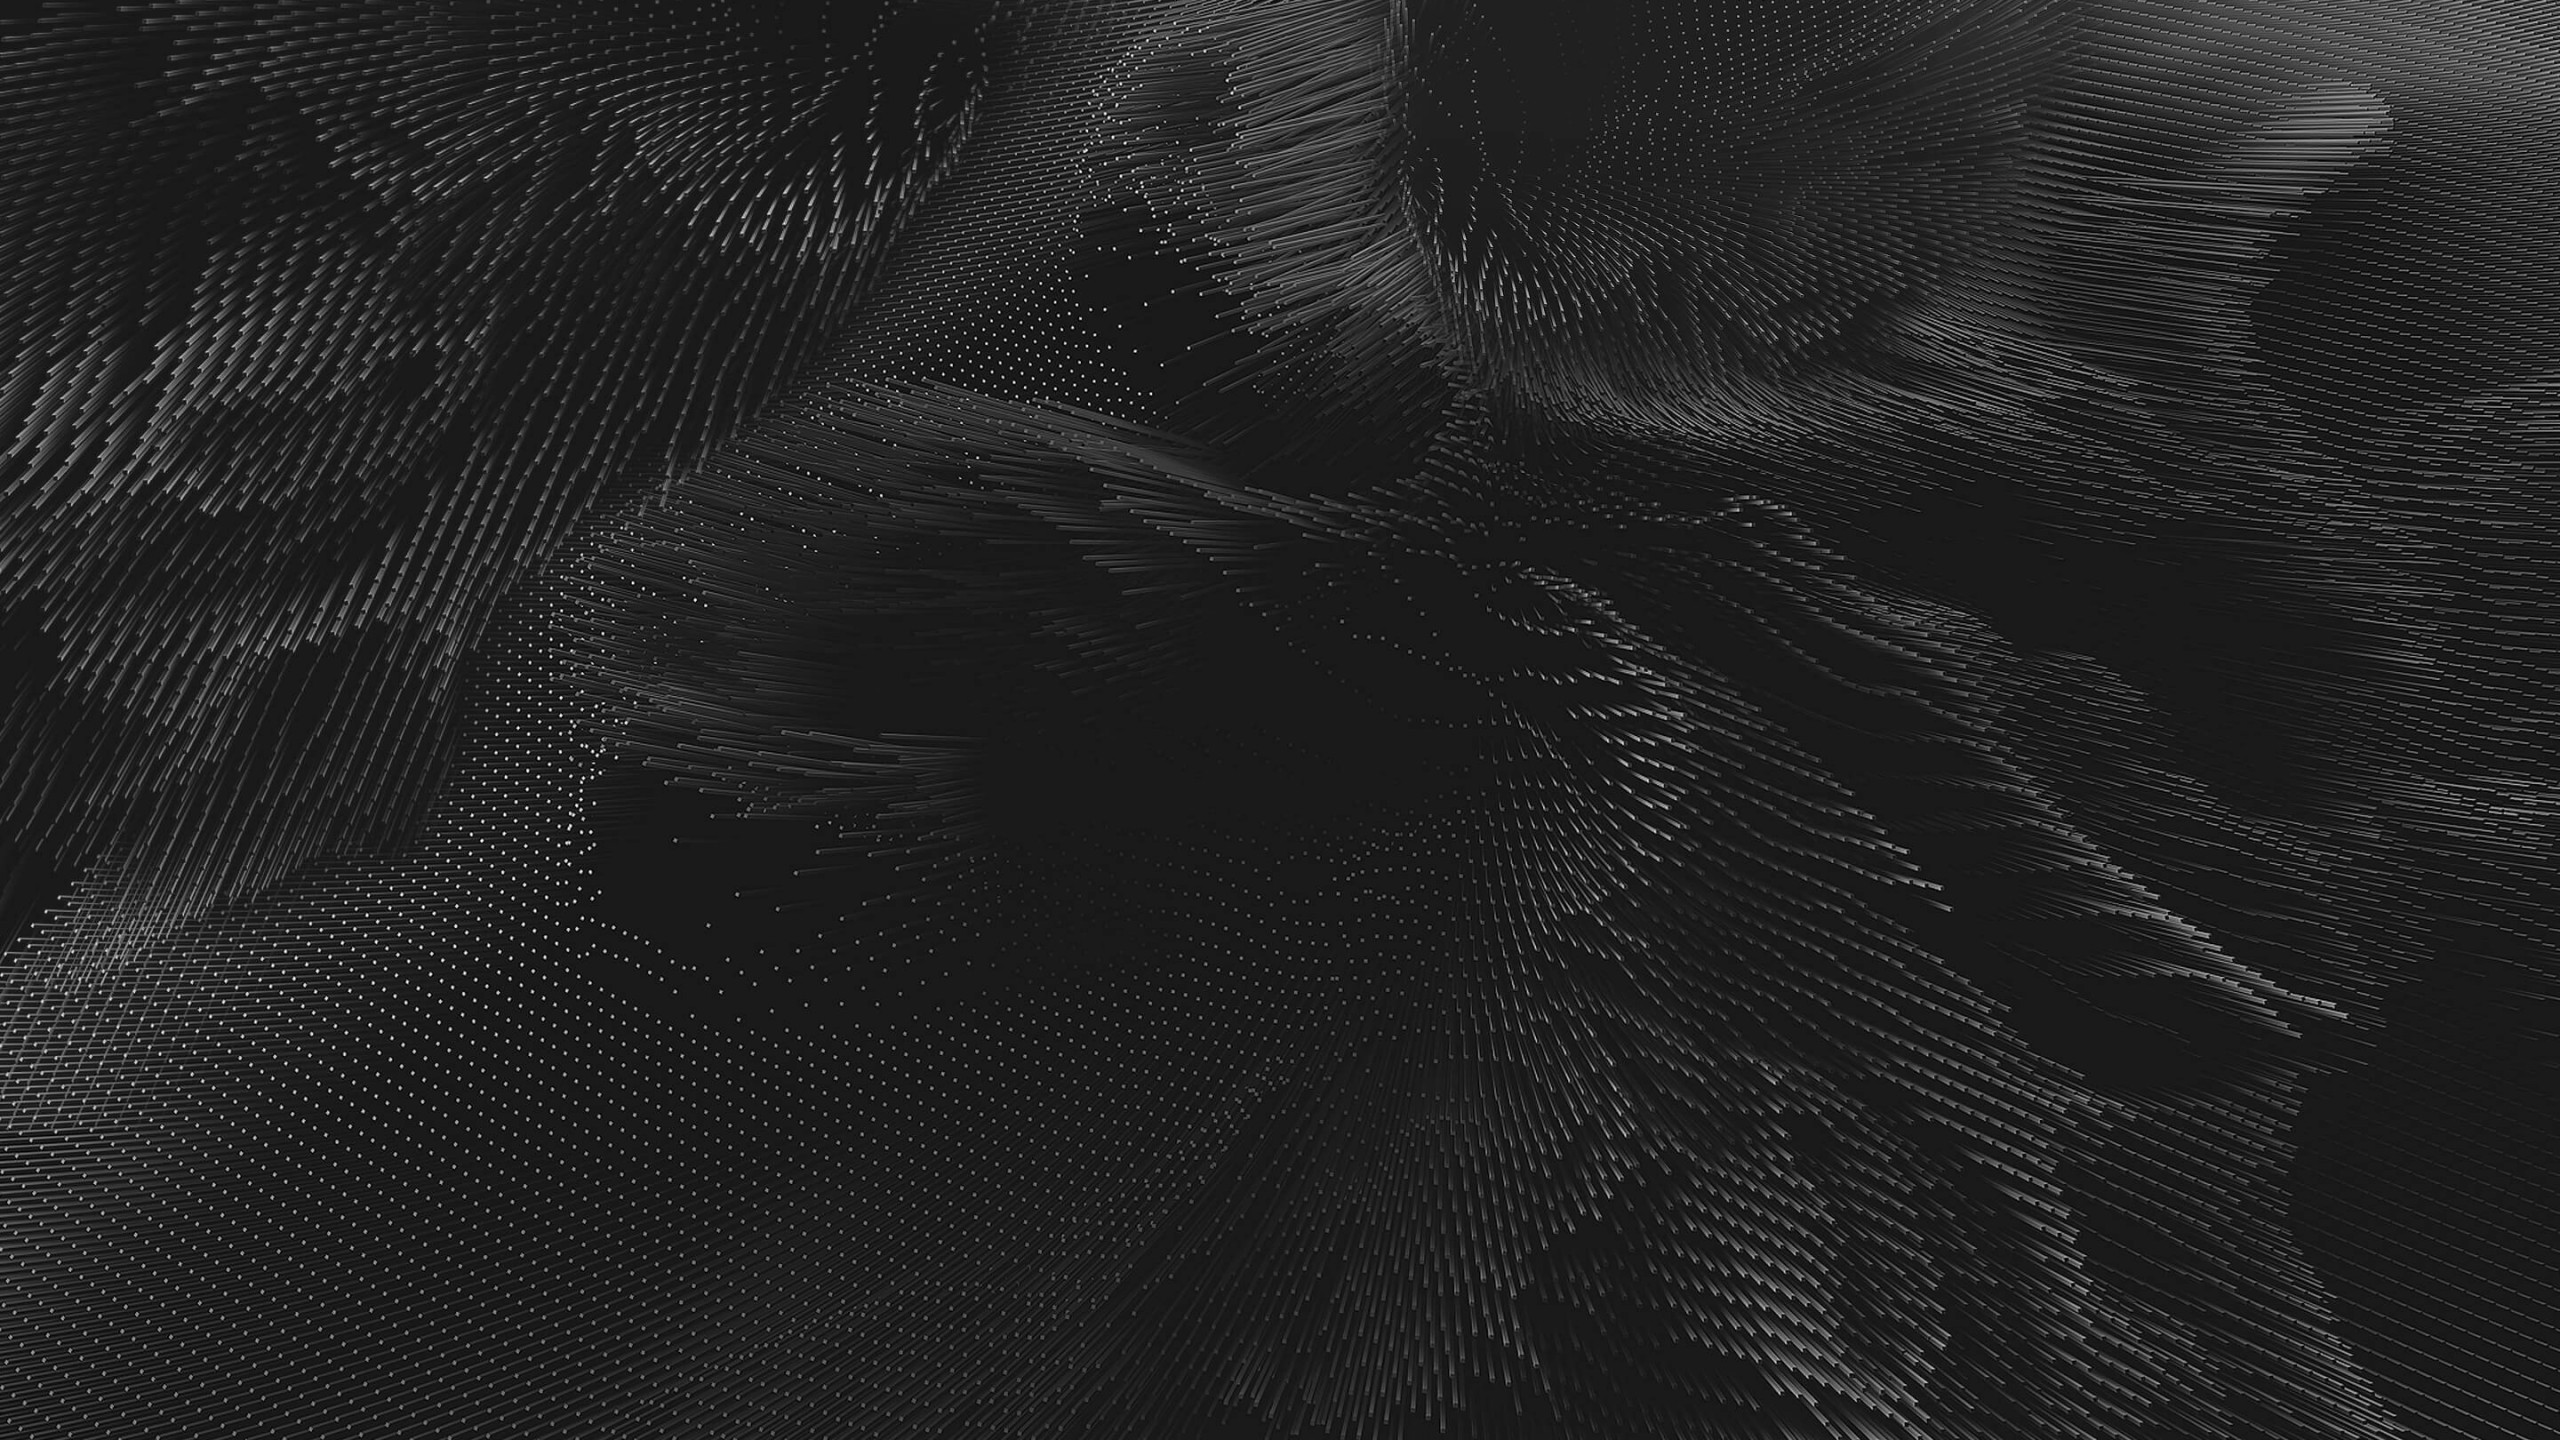 Wind Rendering Wallpaper for Social Media YouTube Channel Art